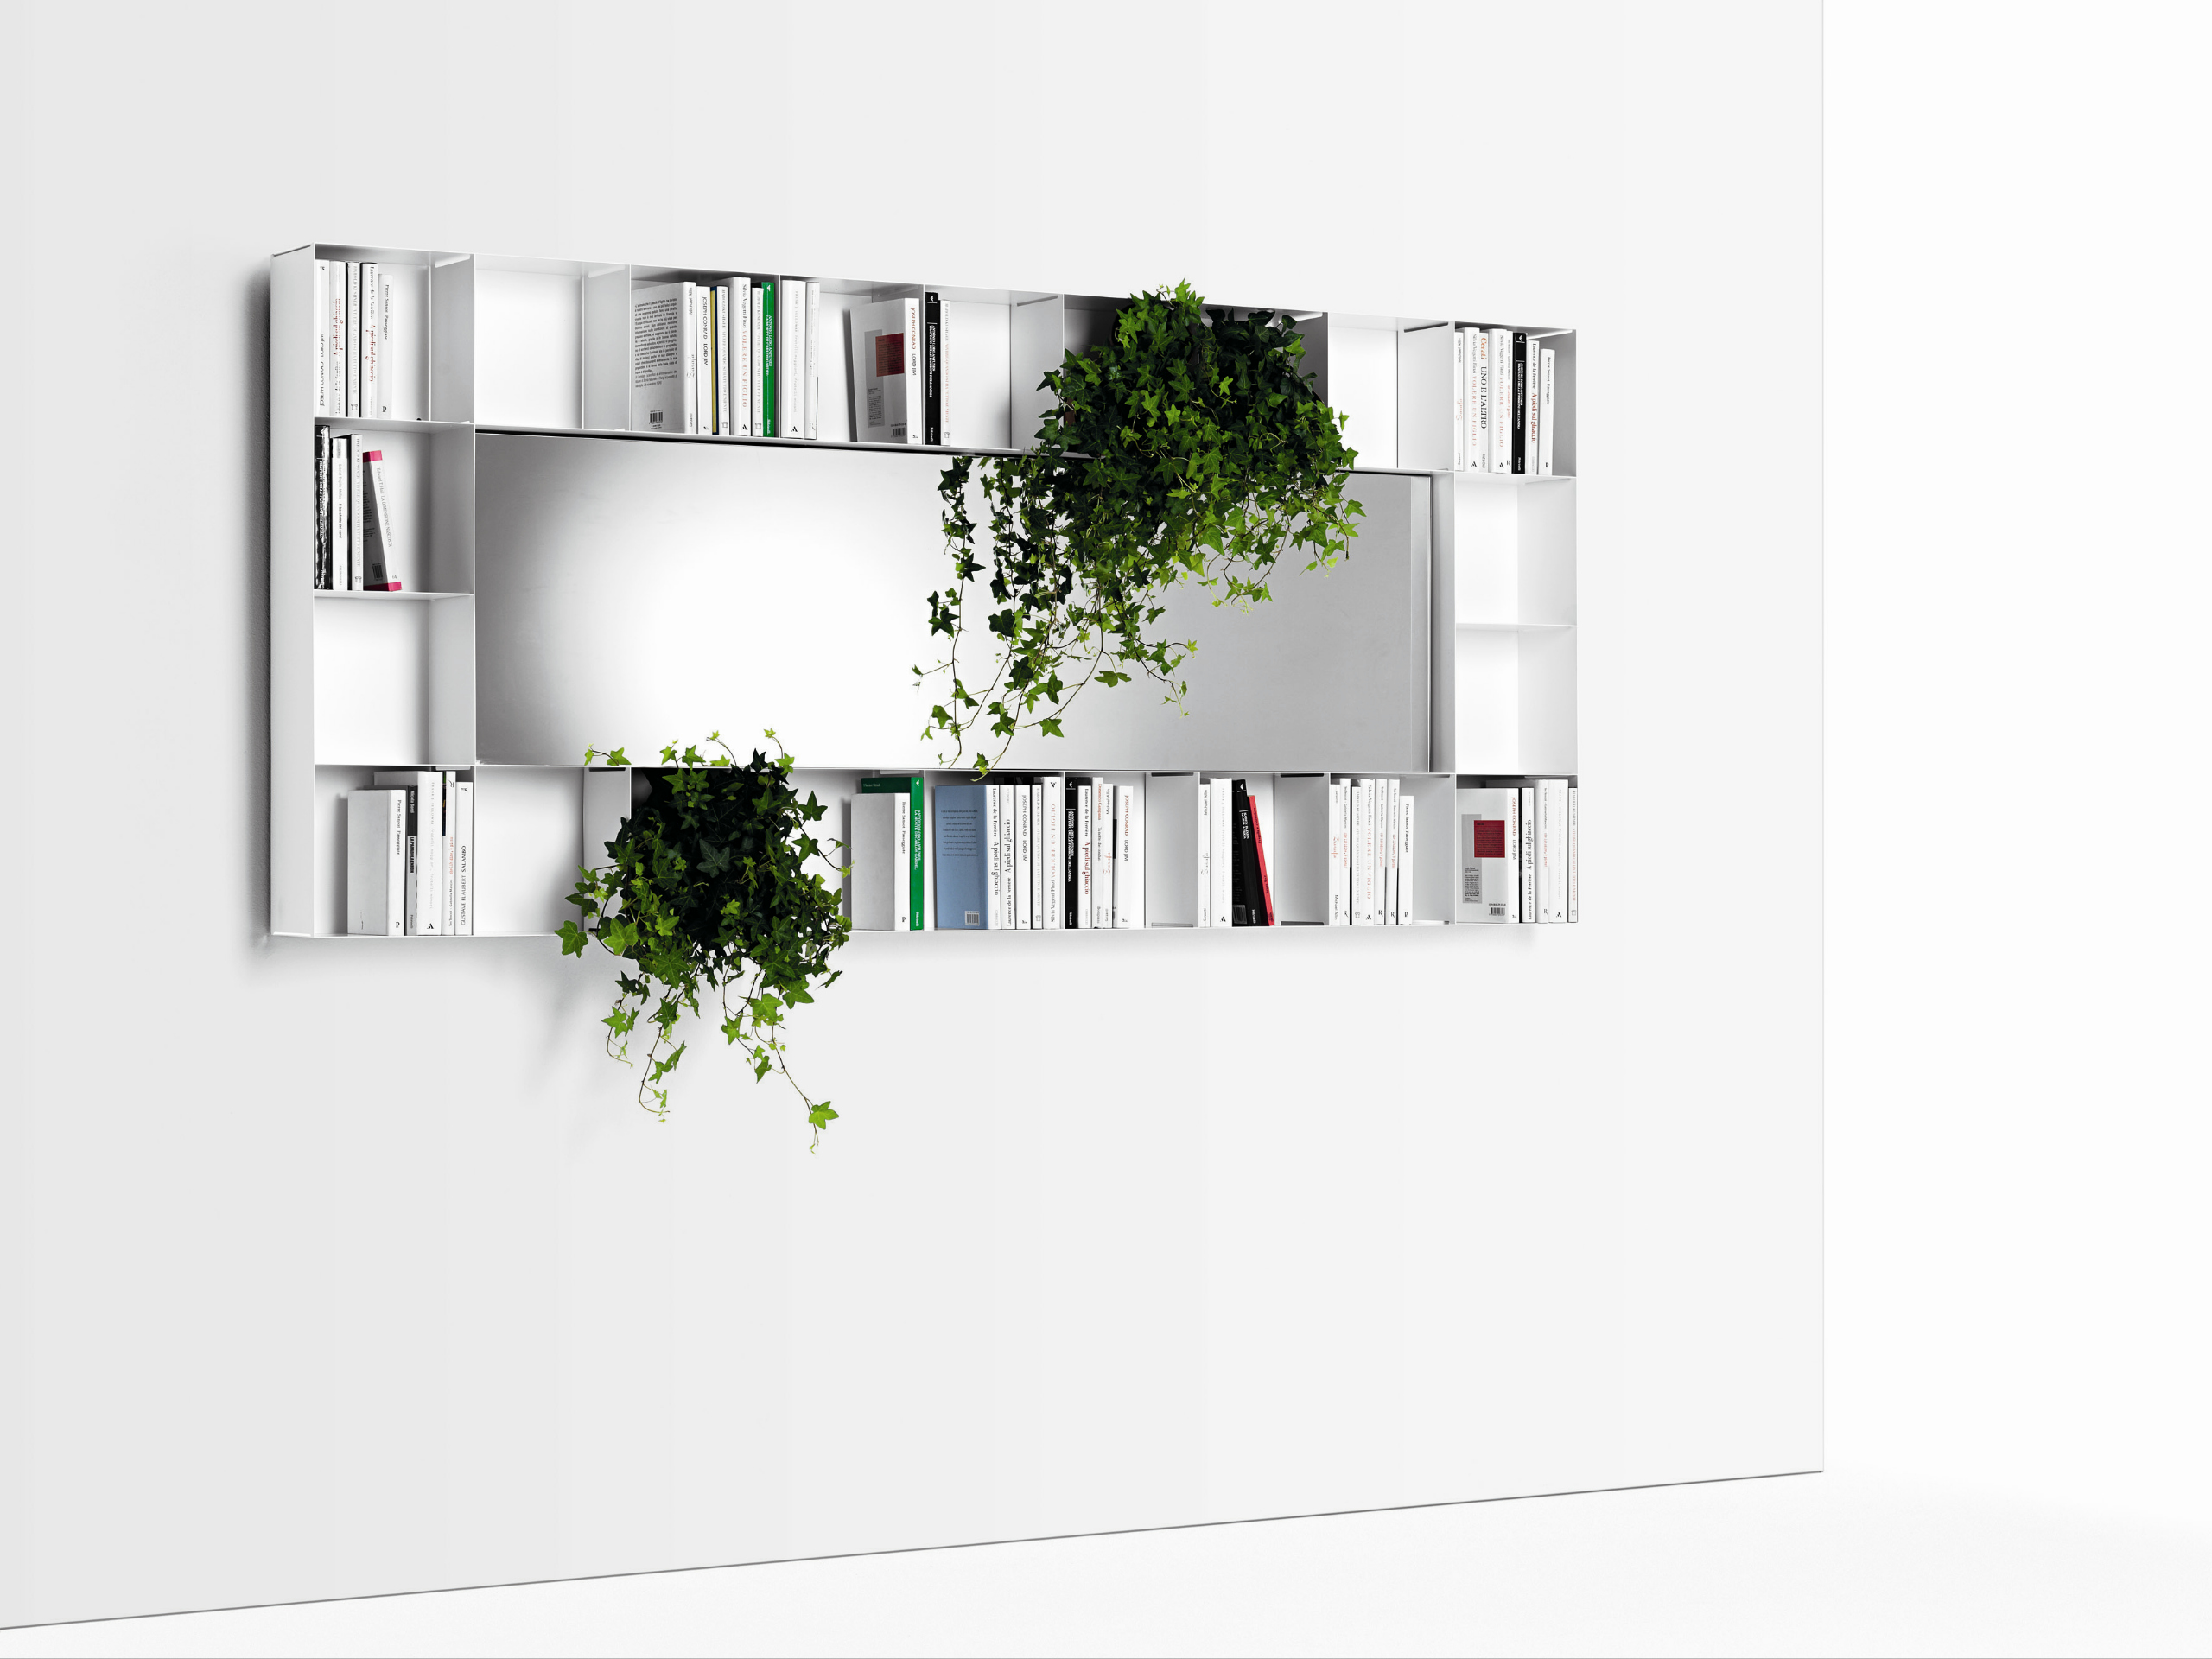 Biblioth que miroir bel vedere by opinion ciatti for Acheter miroir design